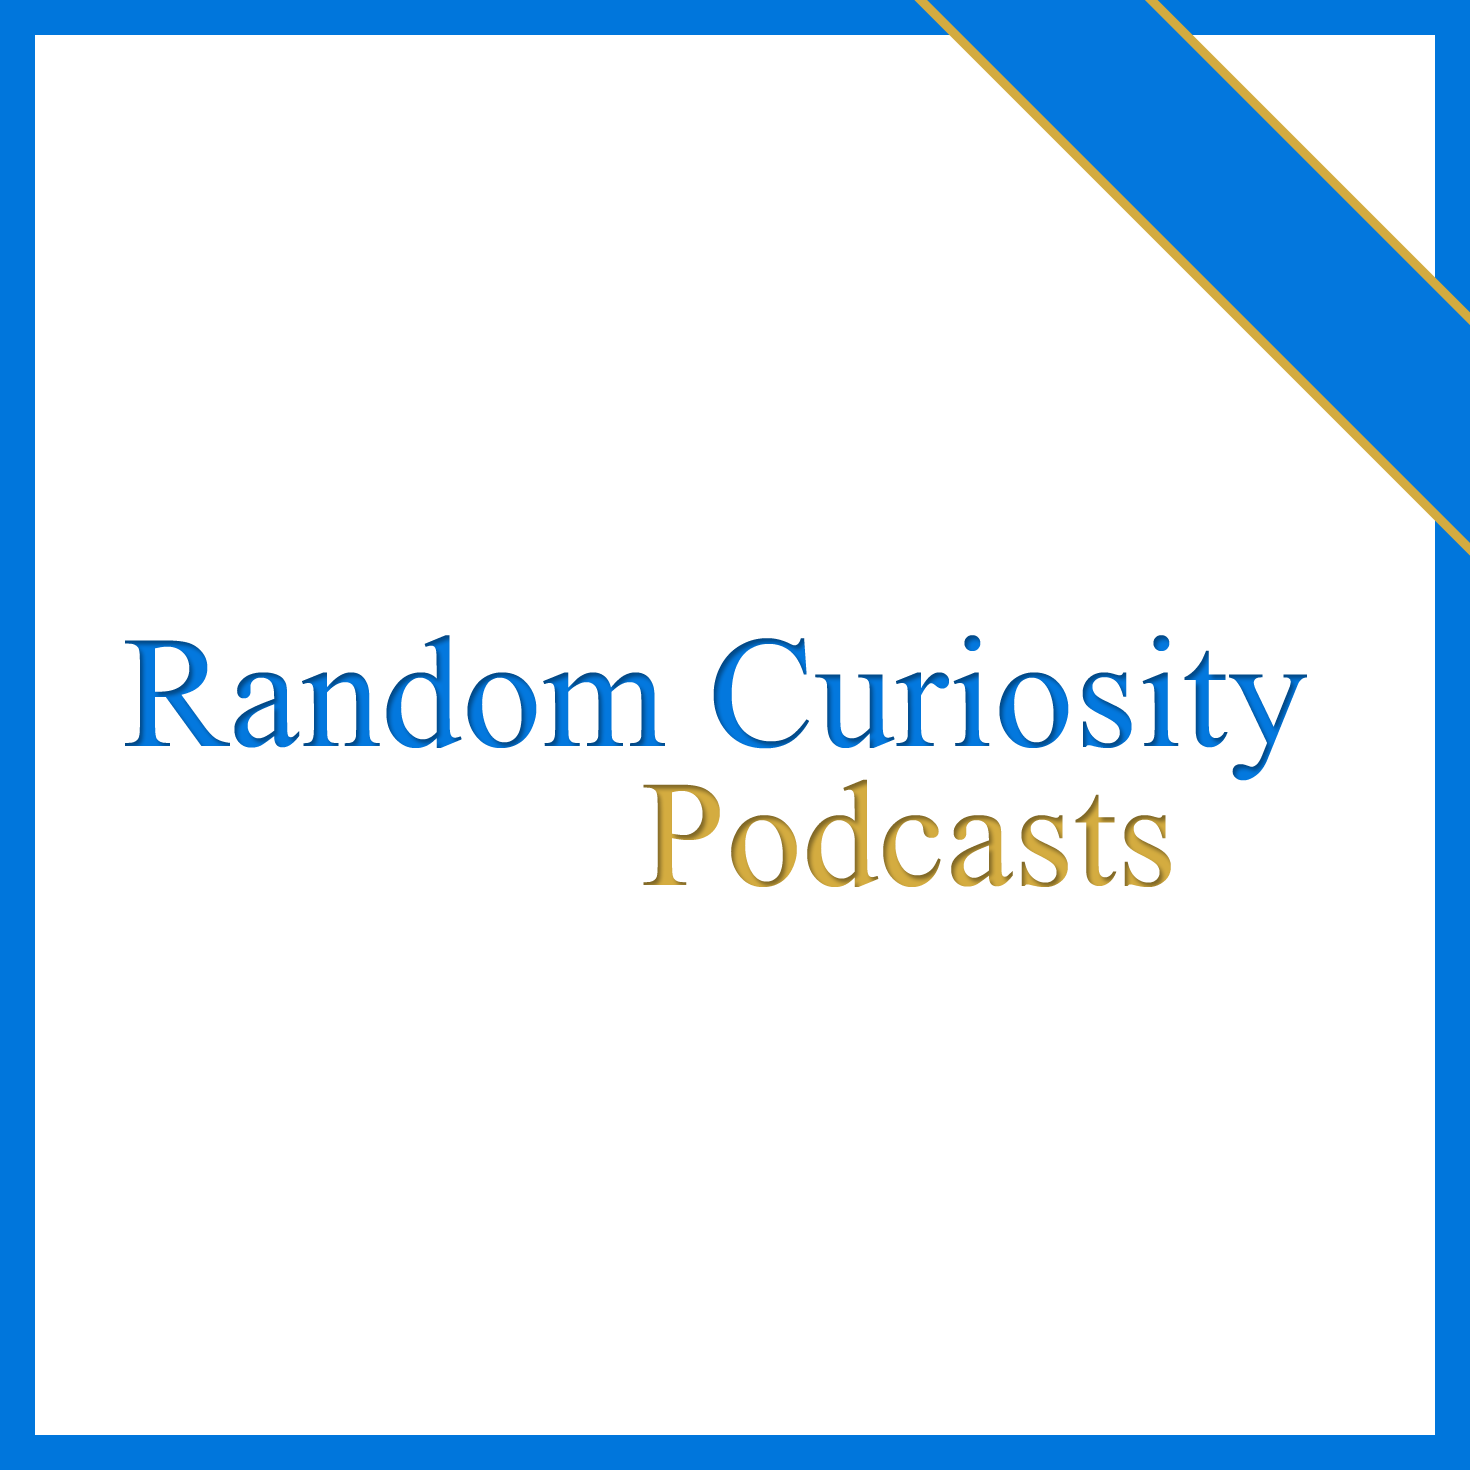 Random Curiosity Podcast